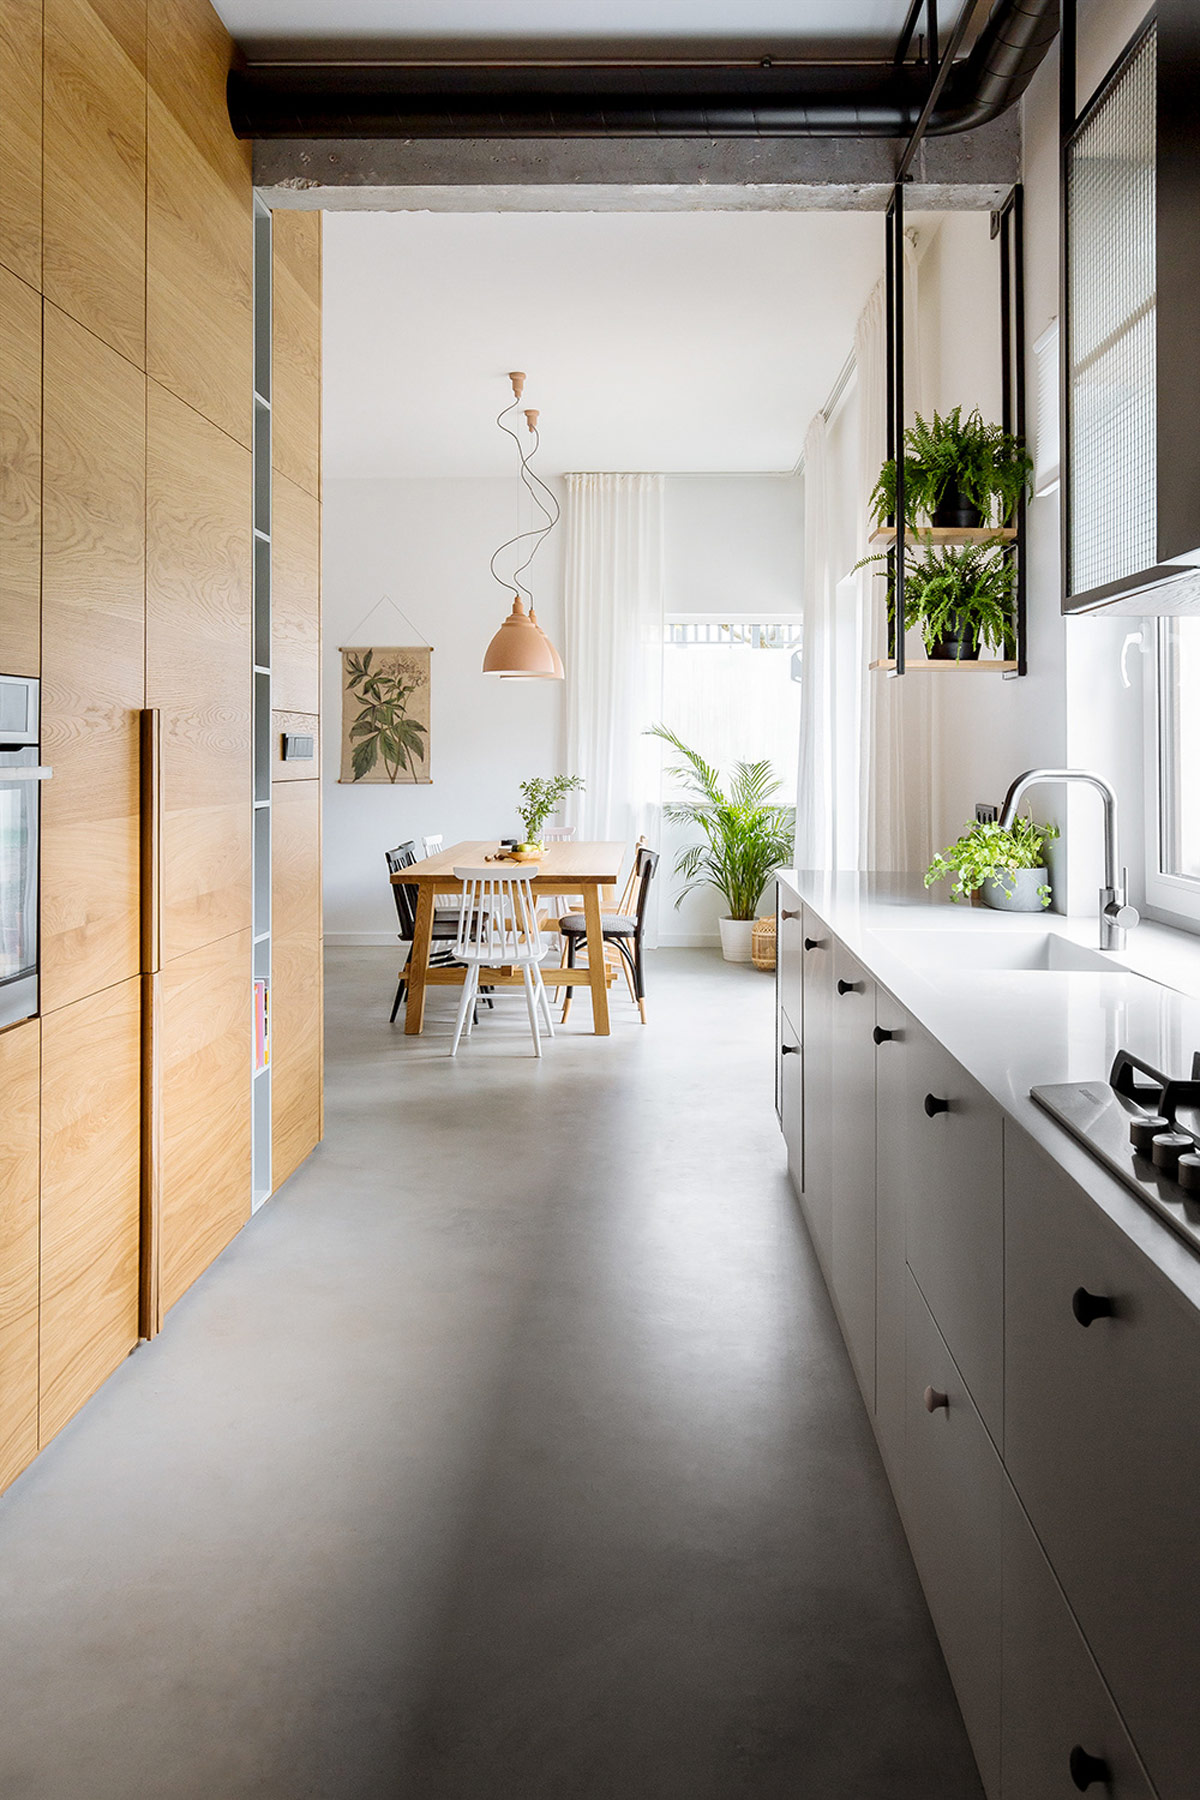 white-and-wood-kitchen.jpg